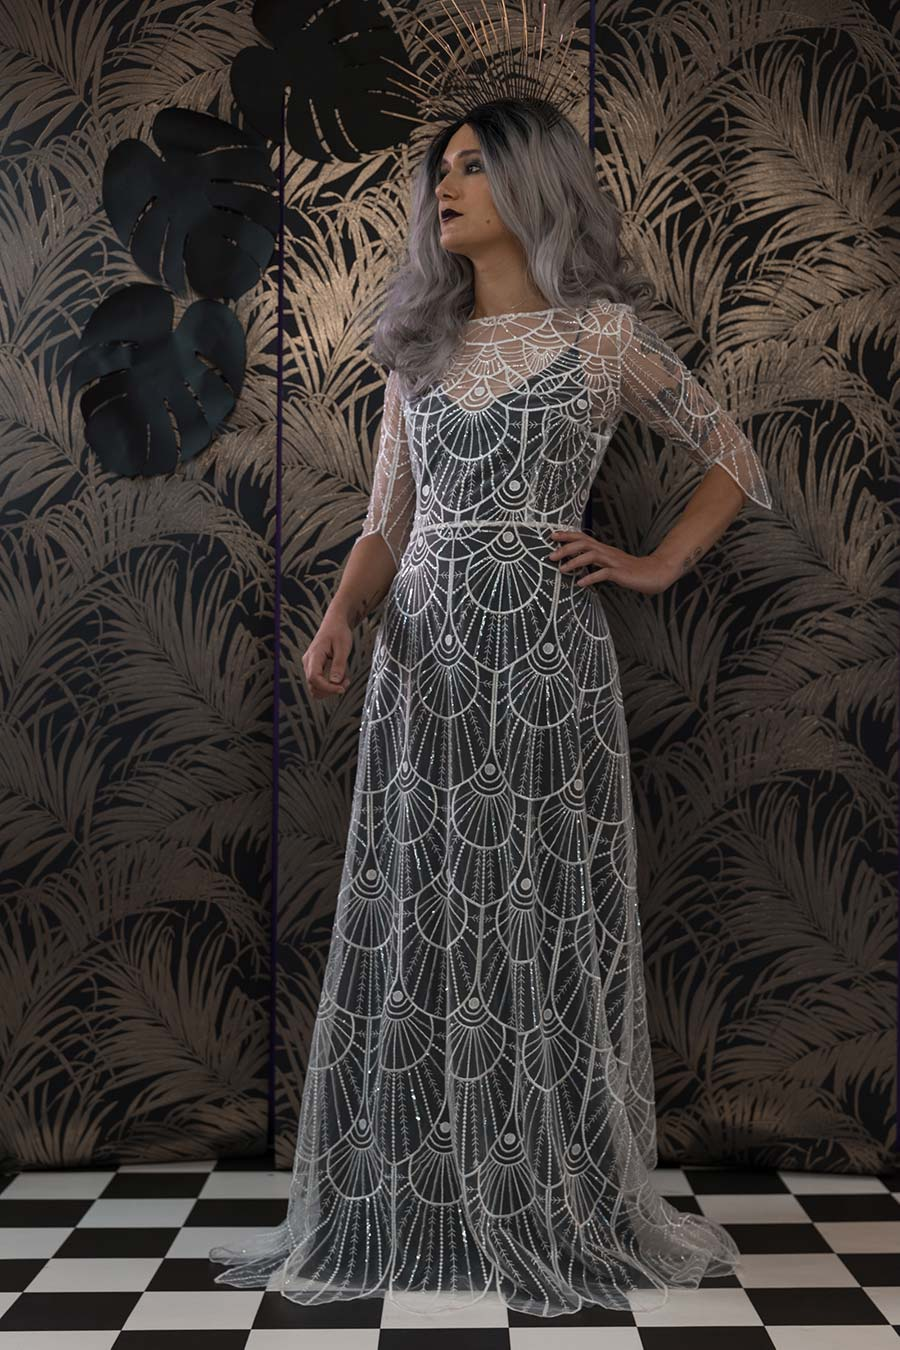 Black gothic wedding dress with intricate lace